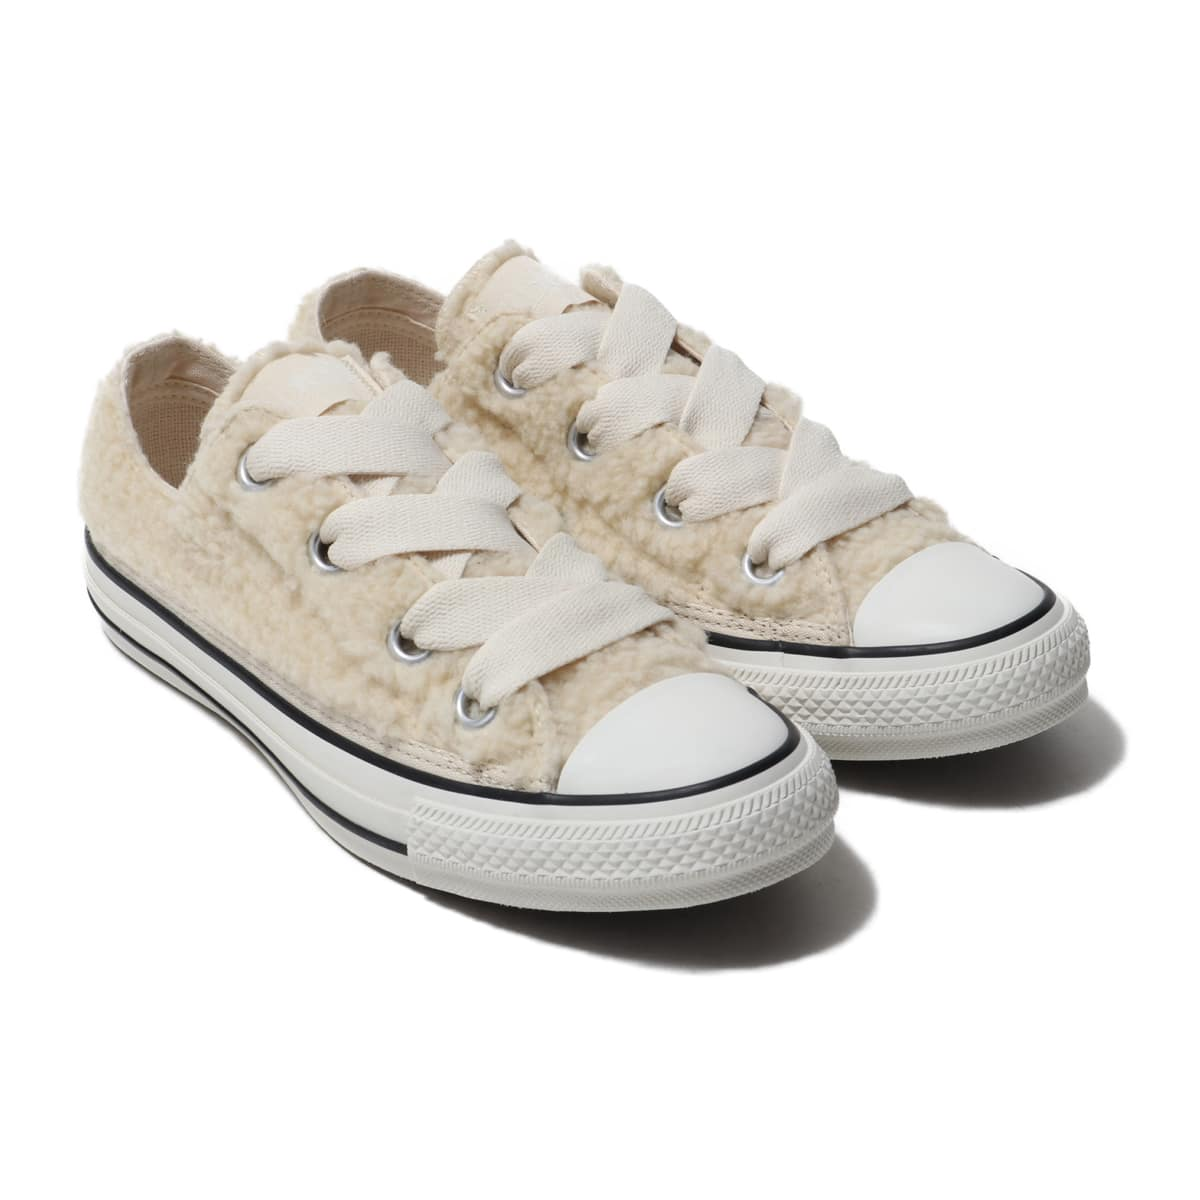 CONVERSE ALL STAR BIGEYELETS BOASLIP OX アイボリー 19HO-I_photo_large